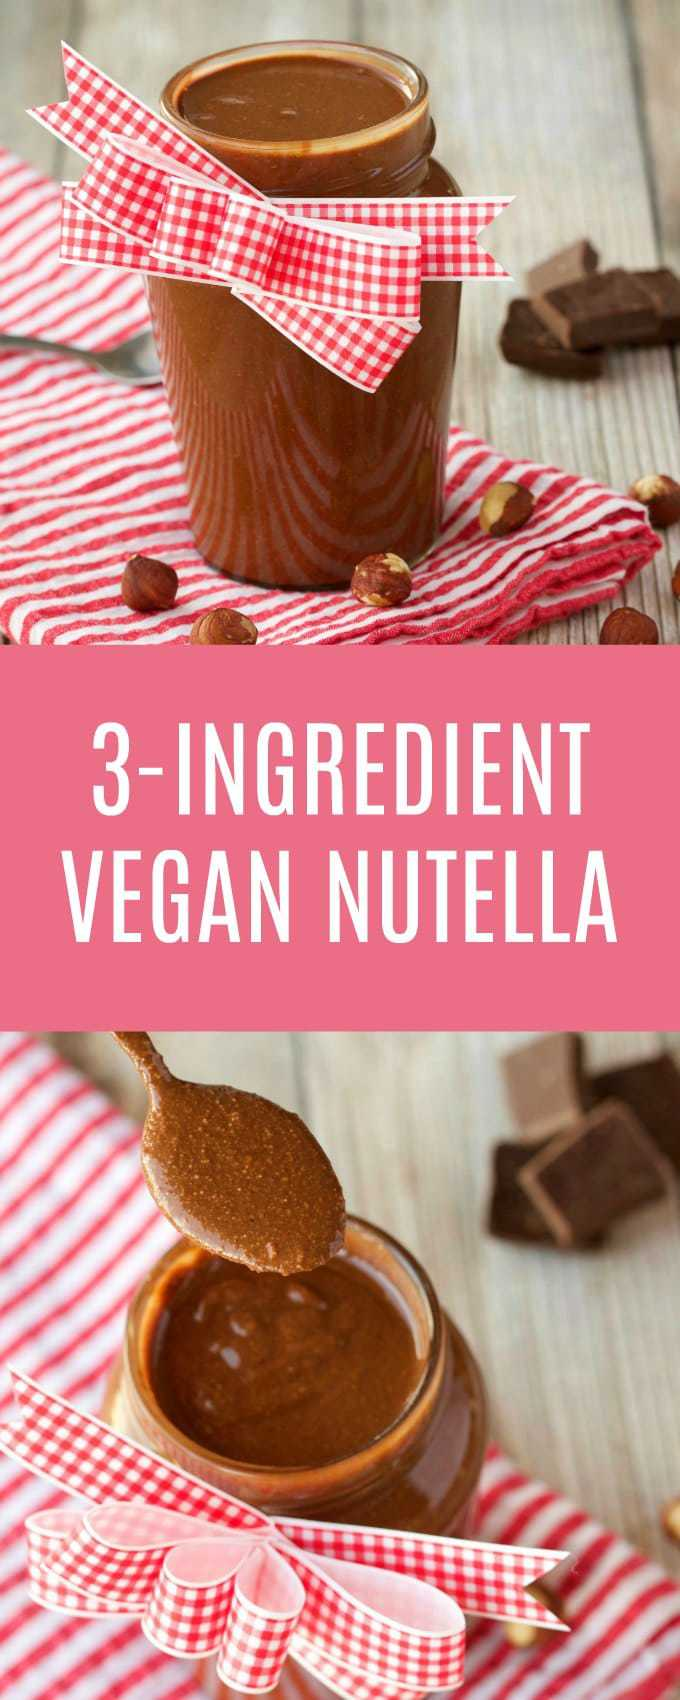 3-Ingredient vegan nutella, perfect as a spread, to use in smoothies, or just to eat with a spoon! Vegan | Vegan Desserts | Gluten-Free Vegan | Dairy Free #vegan #vegannutella #vegandesserts #glutenfree